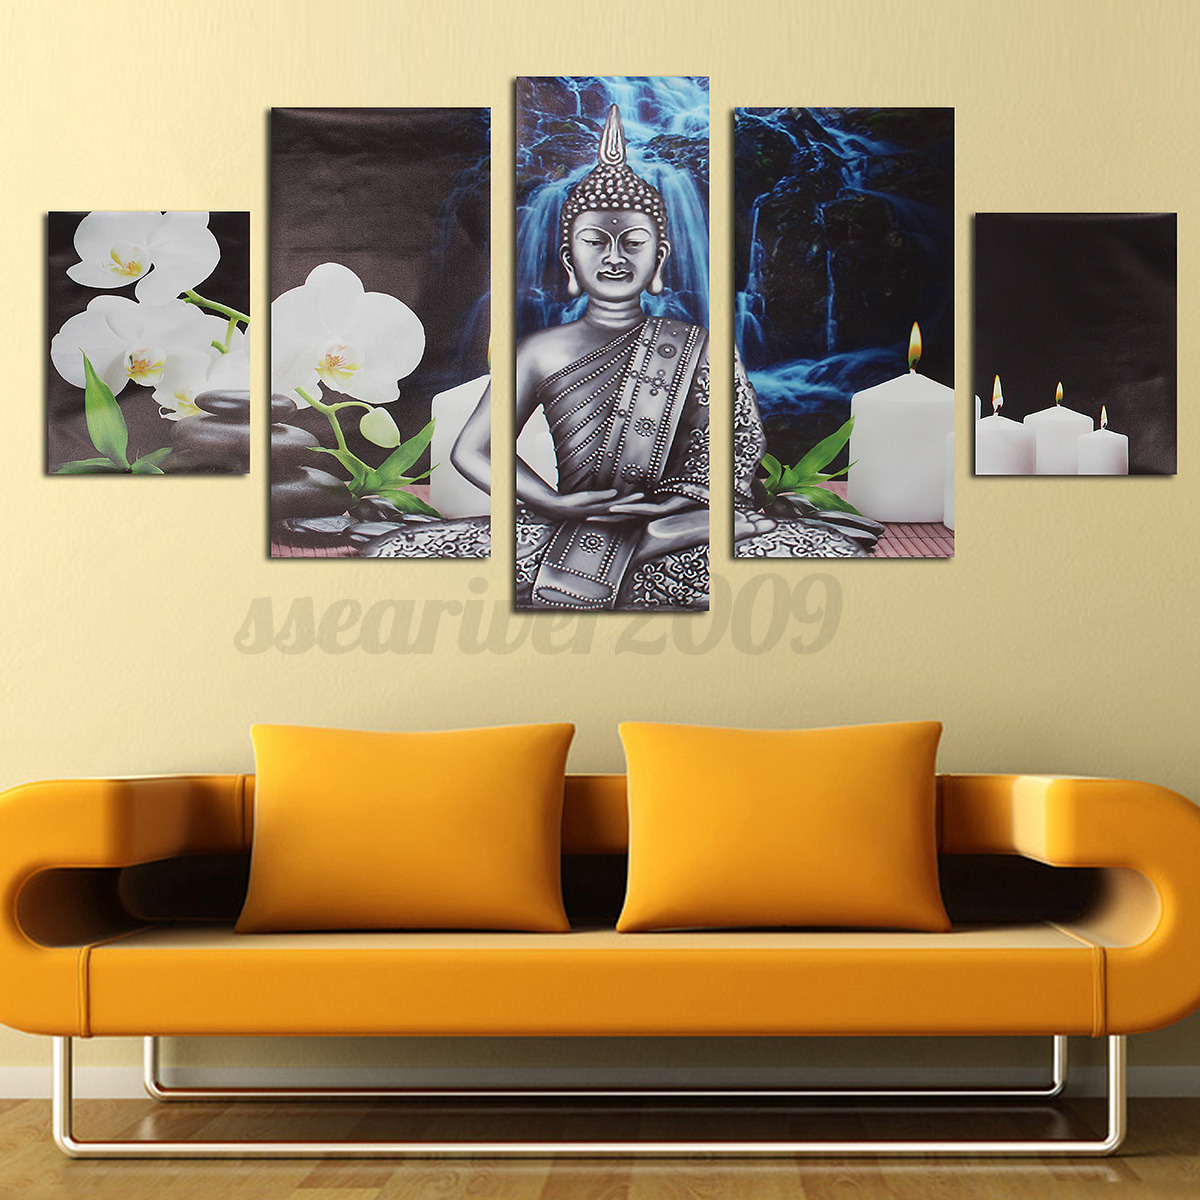 5pcs modern abstract canvas painting print picture wall art home decor no frame ebay. Black Bedroom Furniture Sets. Home Design Ideas